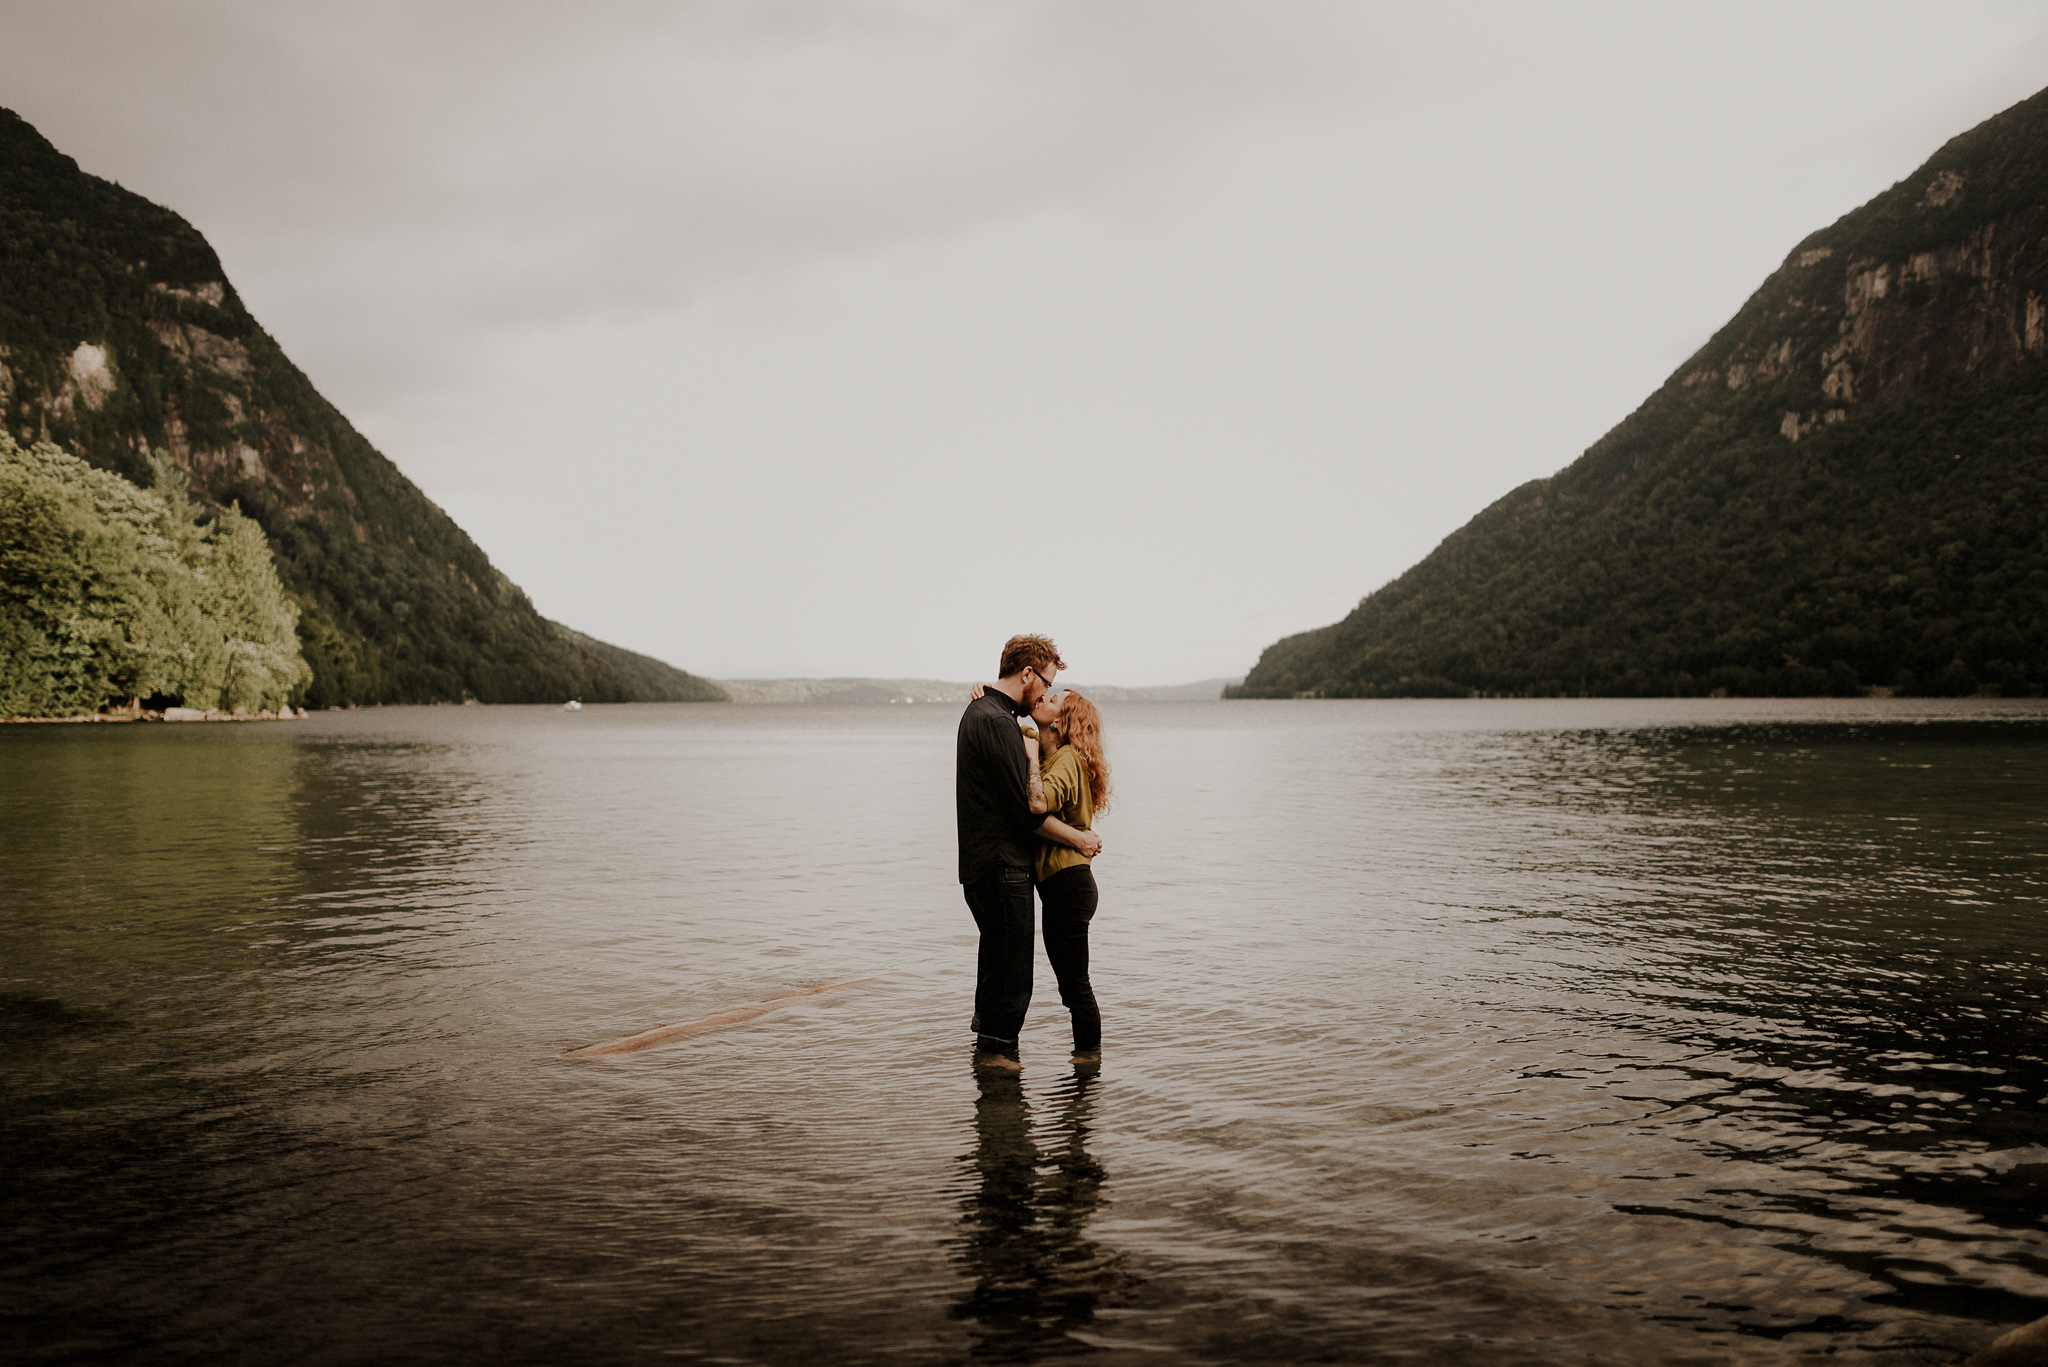 wildsoulsstudio-lake willoughby engagement-16.jpg